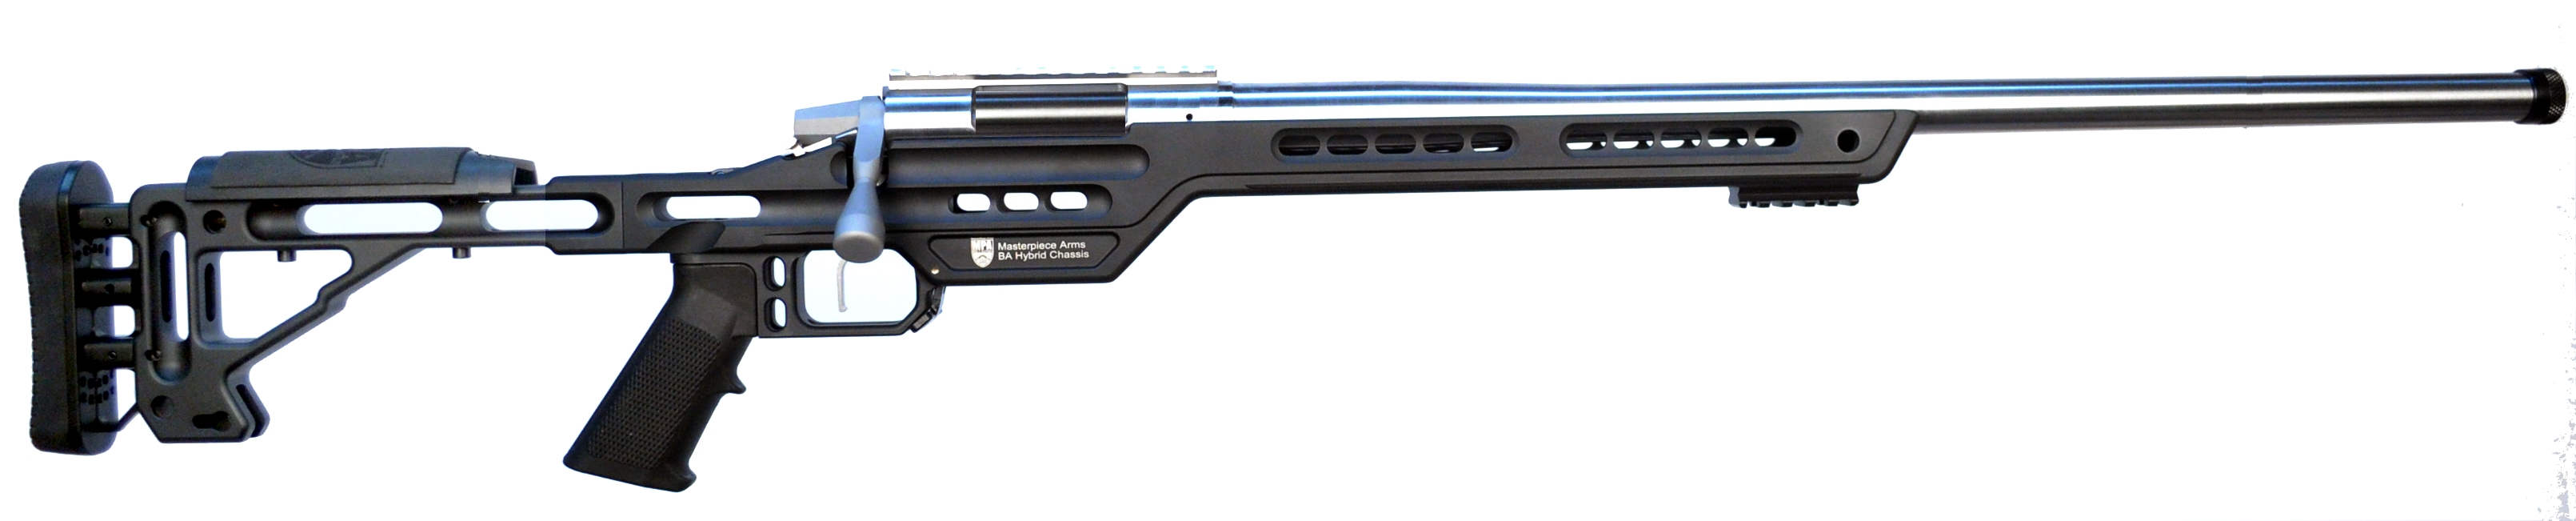 MasterPiece Arms (MPA) Introduces Two New Calibers to the MPA BA Precision Match Rifle (PMR) Competition Rifle